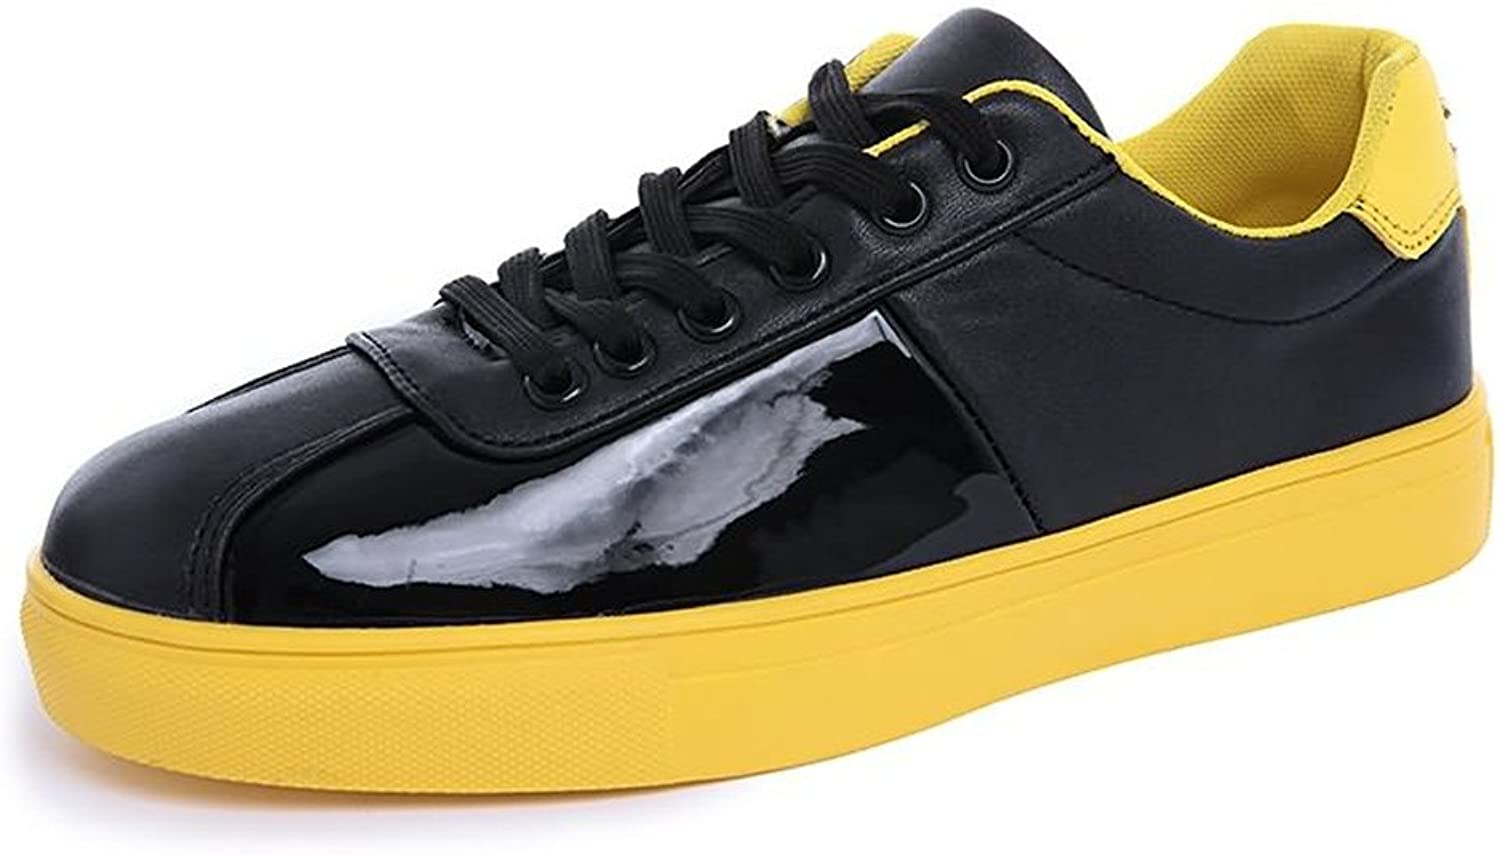 MUMUWU Men's Fashion Sneaker Flat Heel Lace Up Patent Leather Solid color shoes Carrier